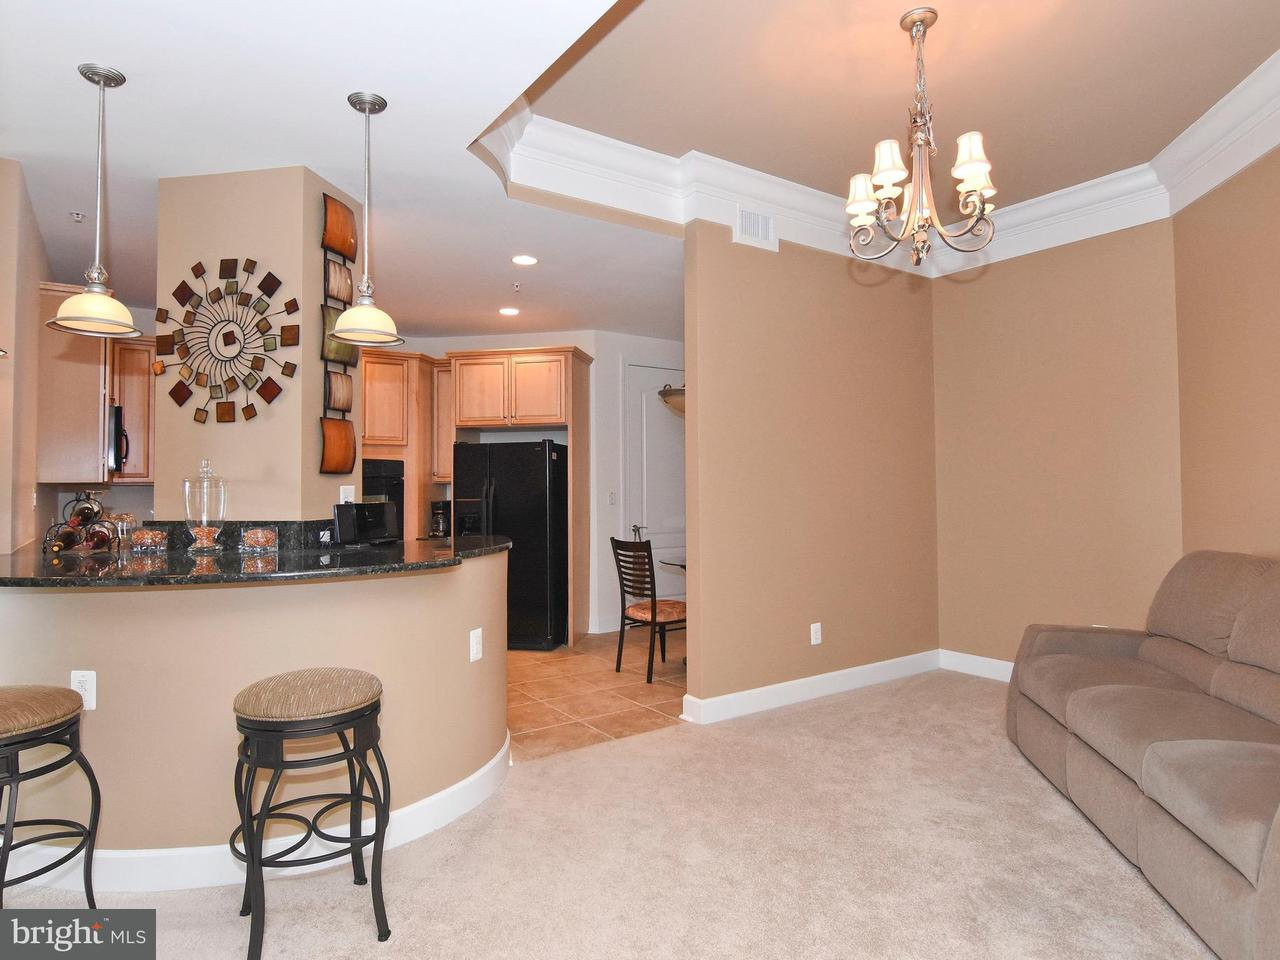 Additional photo for property listing at 1915 Towne Centre Blvd #702 1915 Towne Centre Blvd #702 Annapolis, Maryland 21401 United States